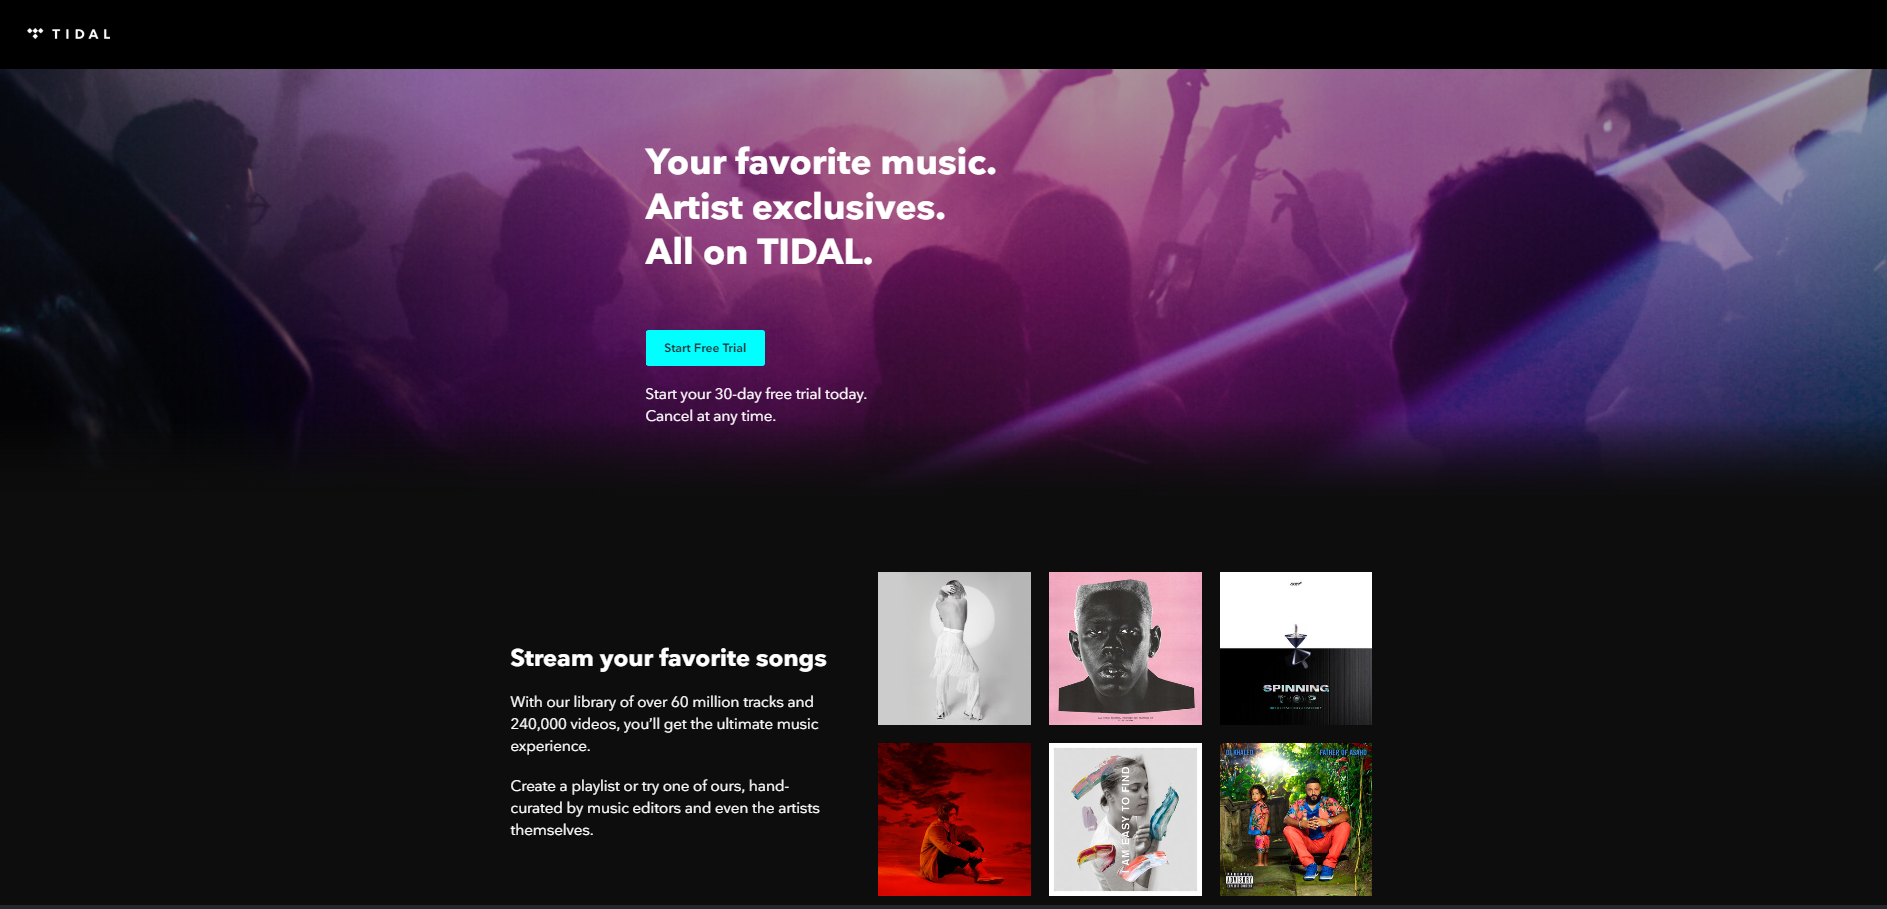 The Best Music Subscriptions in 2019